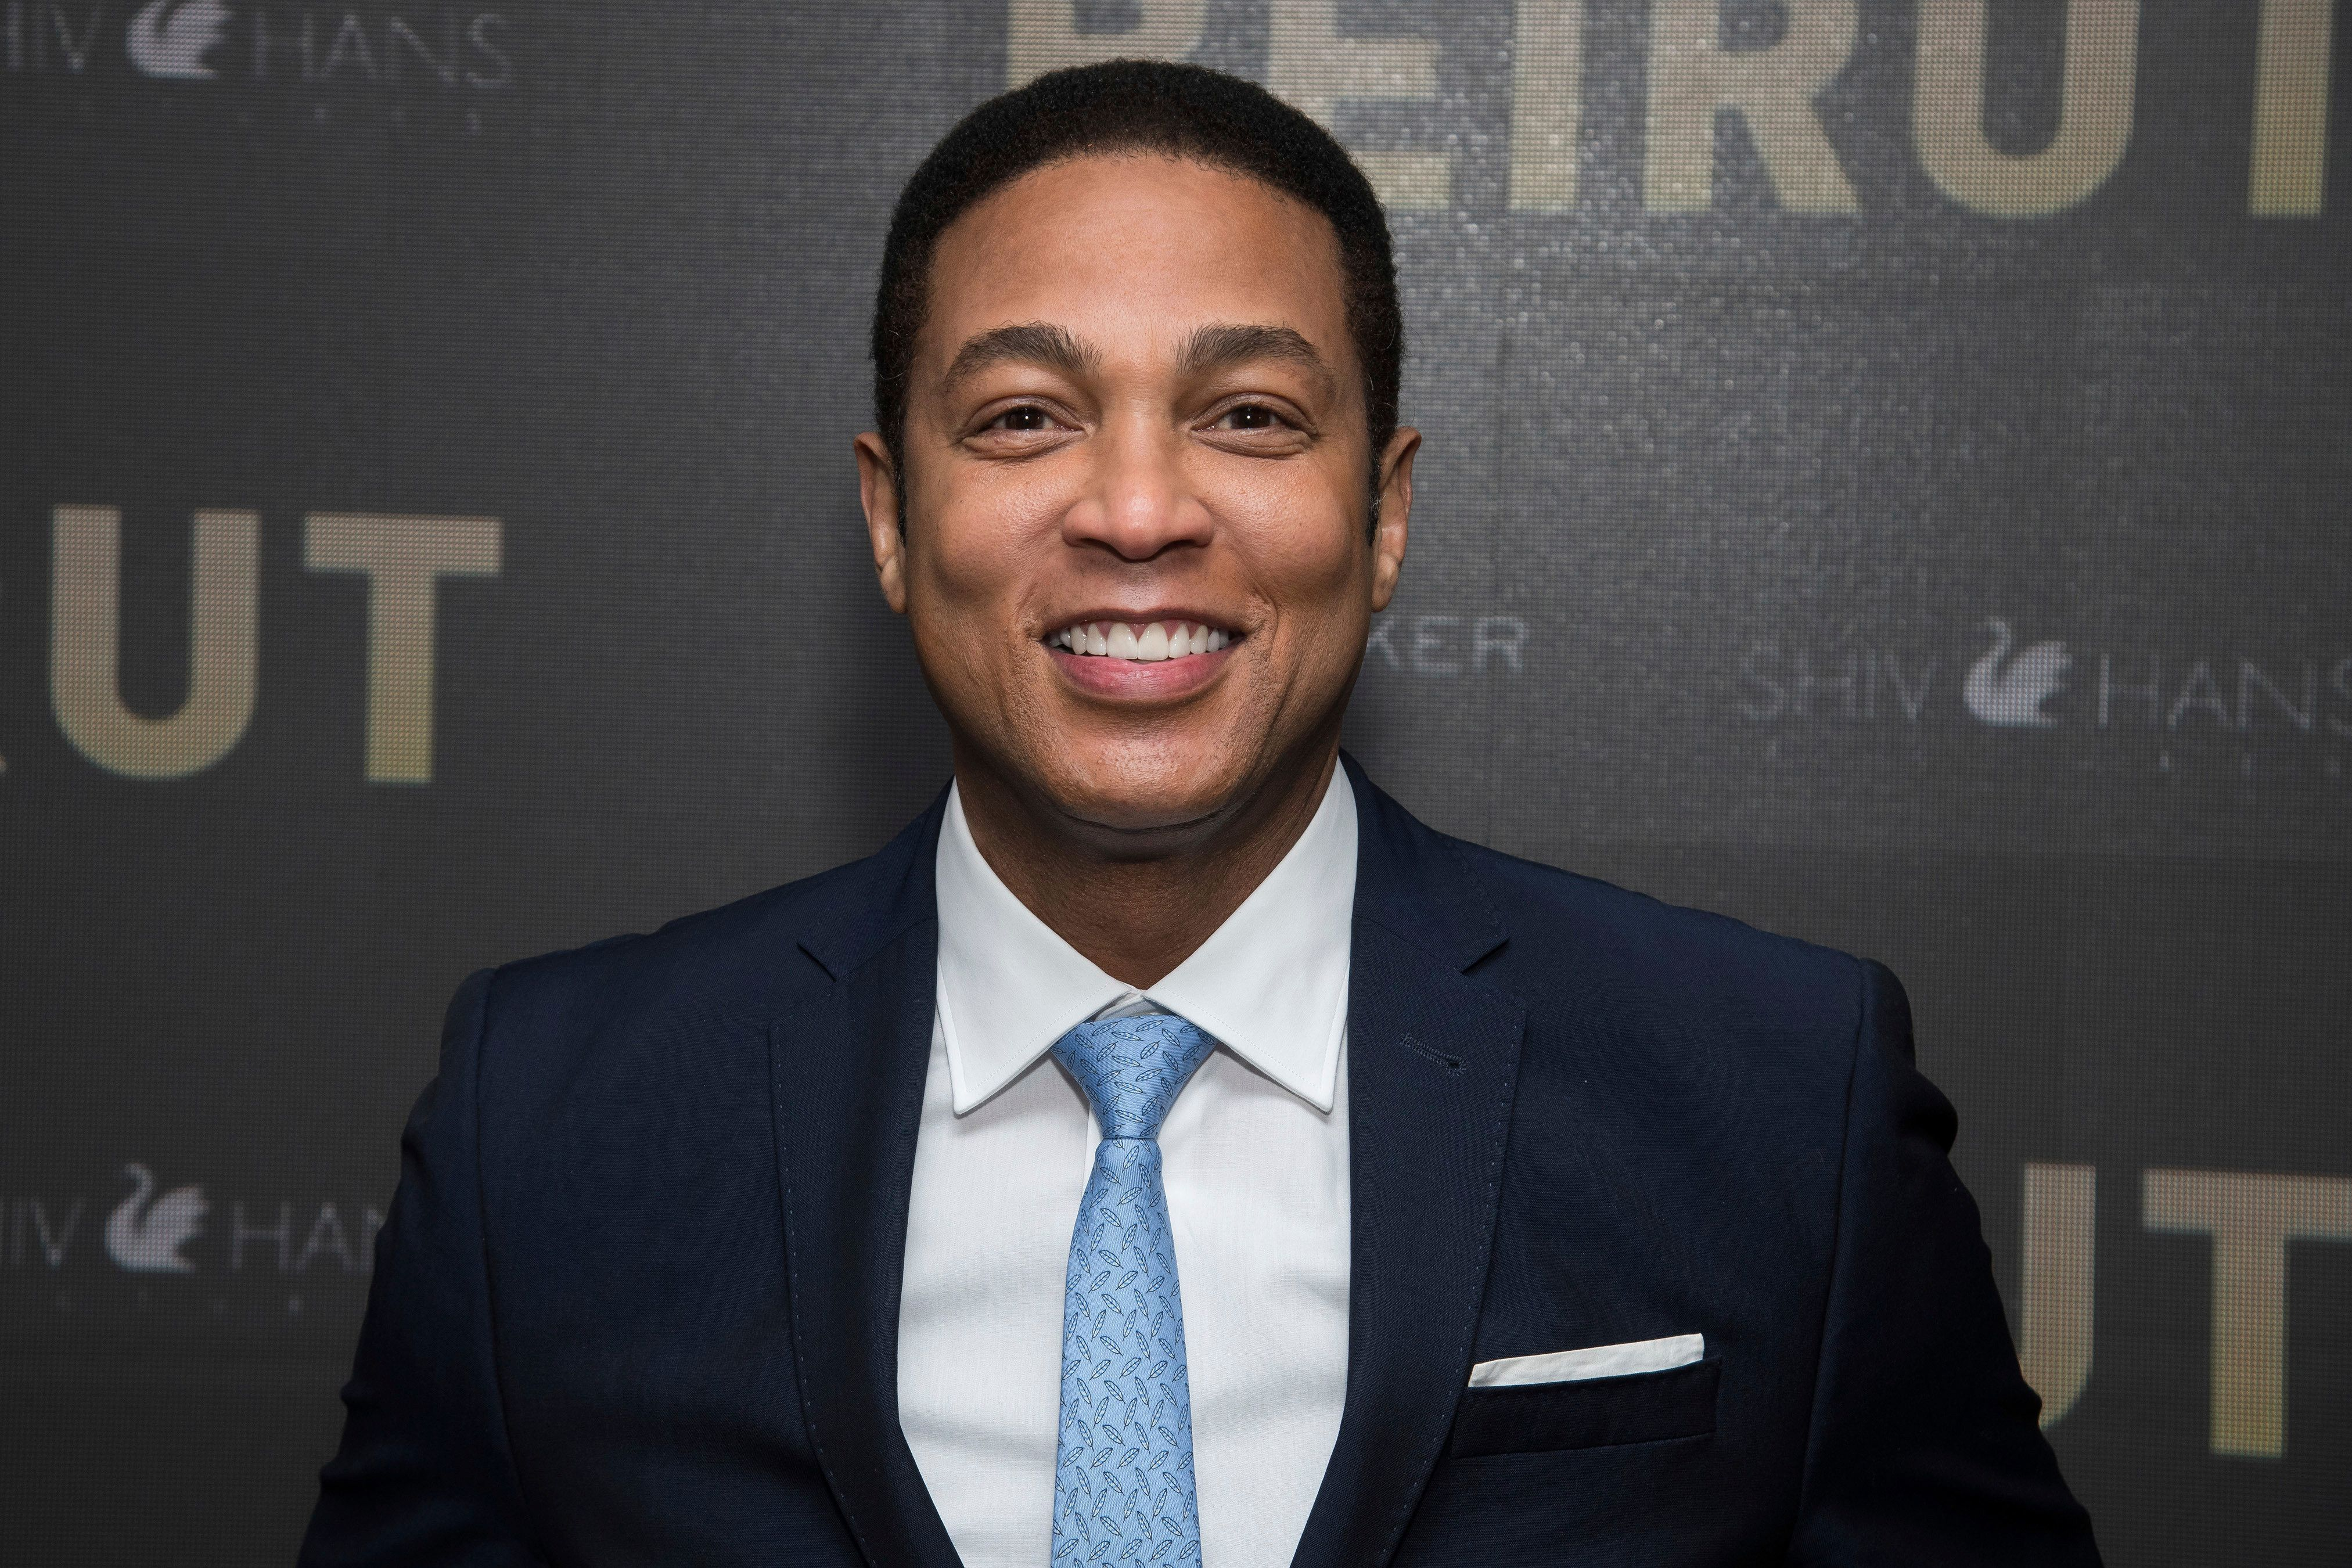 """Don Lemon attends a screening of """"Beirut"""" at the Robin Williams Center on Tuesday, April 10, 2018, in New York. (Photo by Charles Sykes/Invision/AP)"""